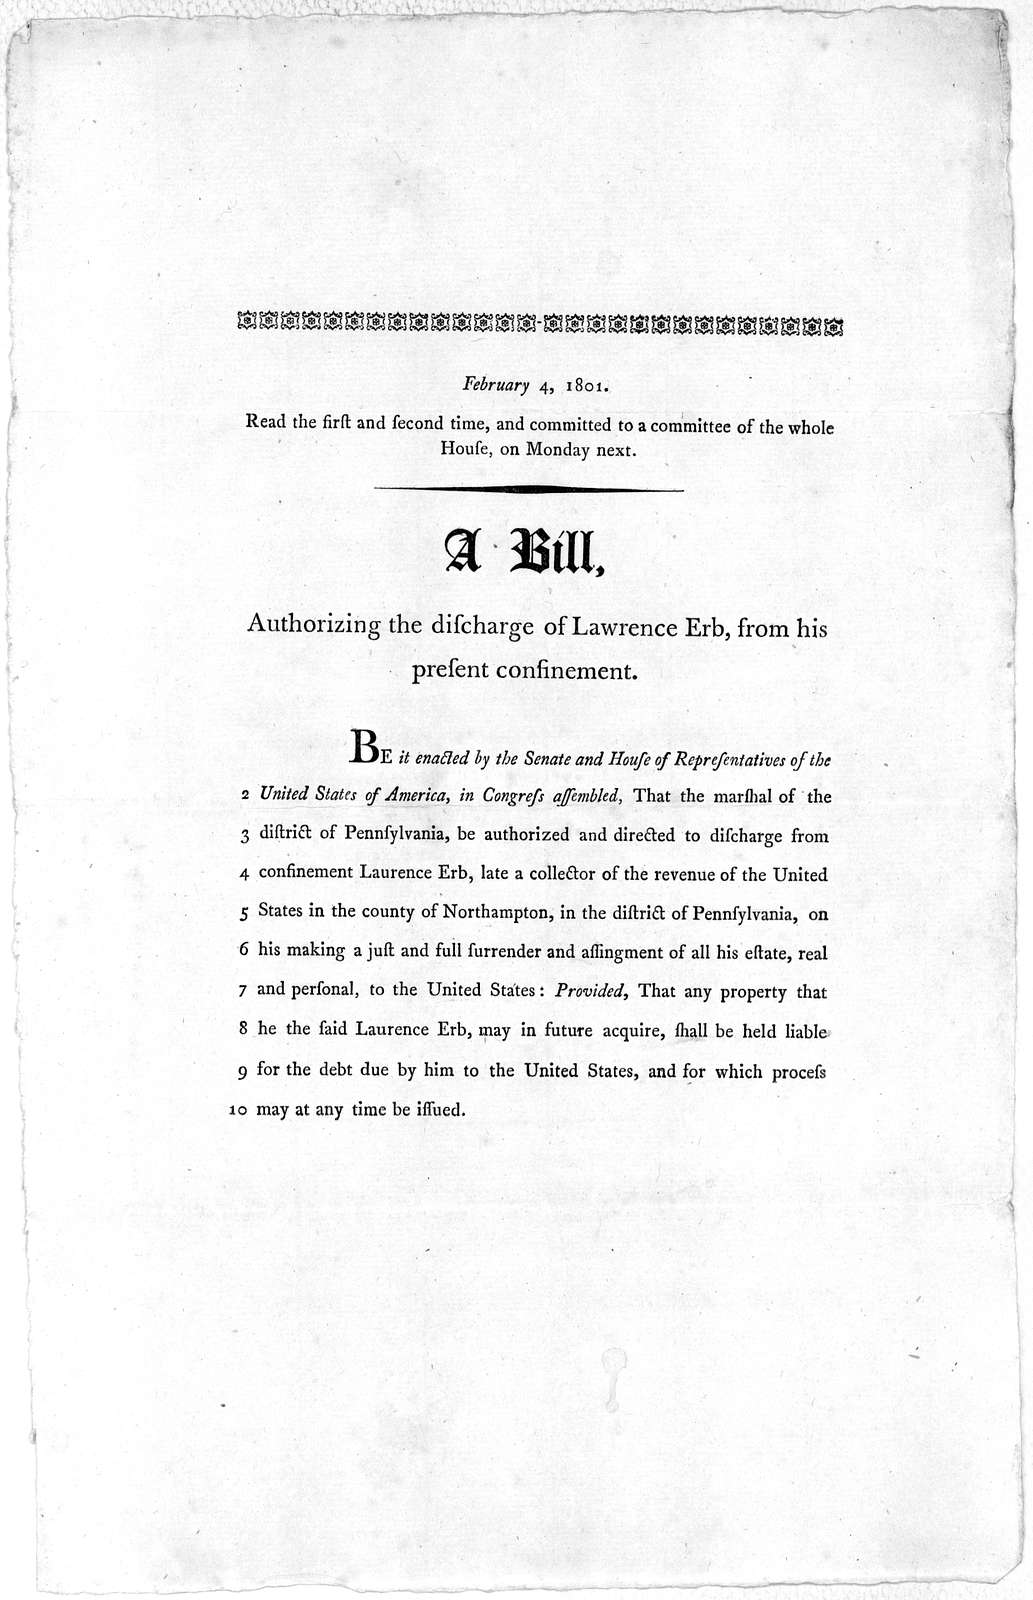 February 4, 1801. Read the first and second time, and committed to a committee of the whole House, on Monday next. A bill authorizing the discharge of Lawrence Erb, from his present confinement. [Washington 1801].